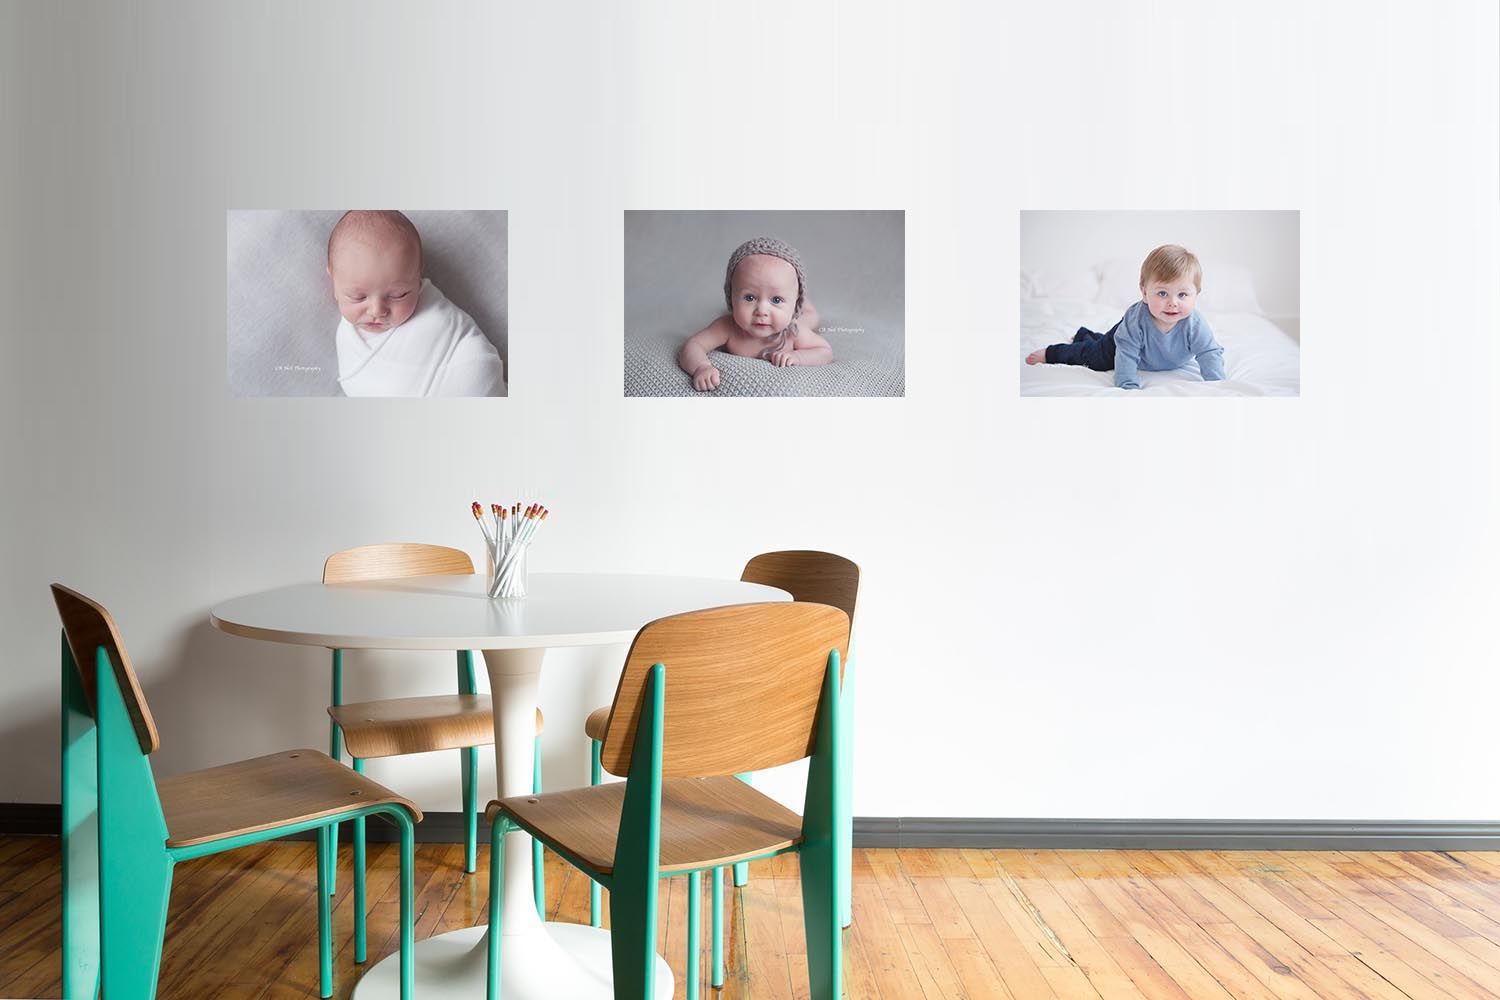 Baby photographer Glasgow - Displaying your images on the walls